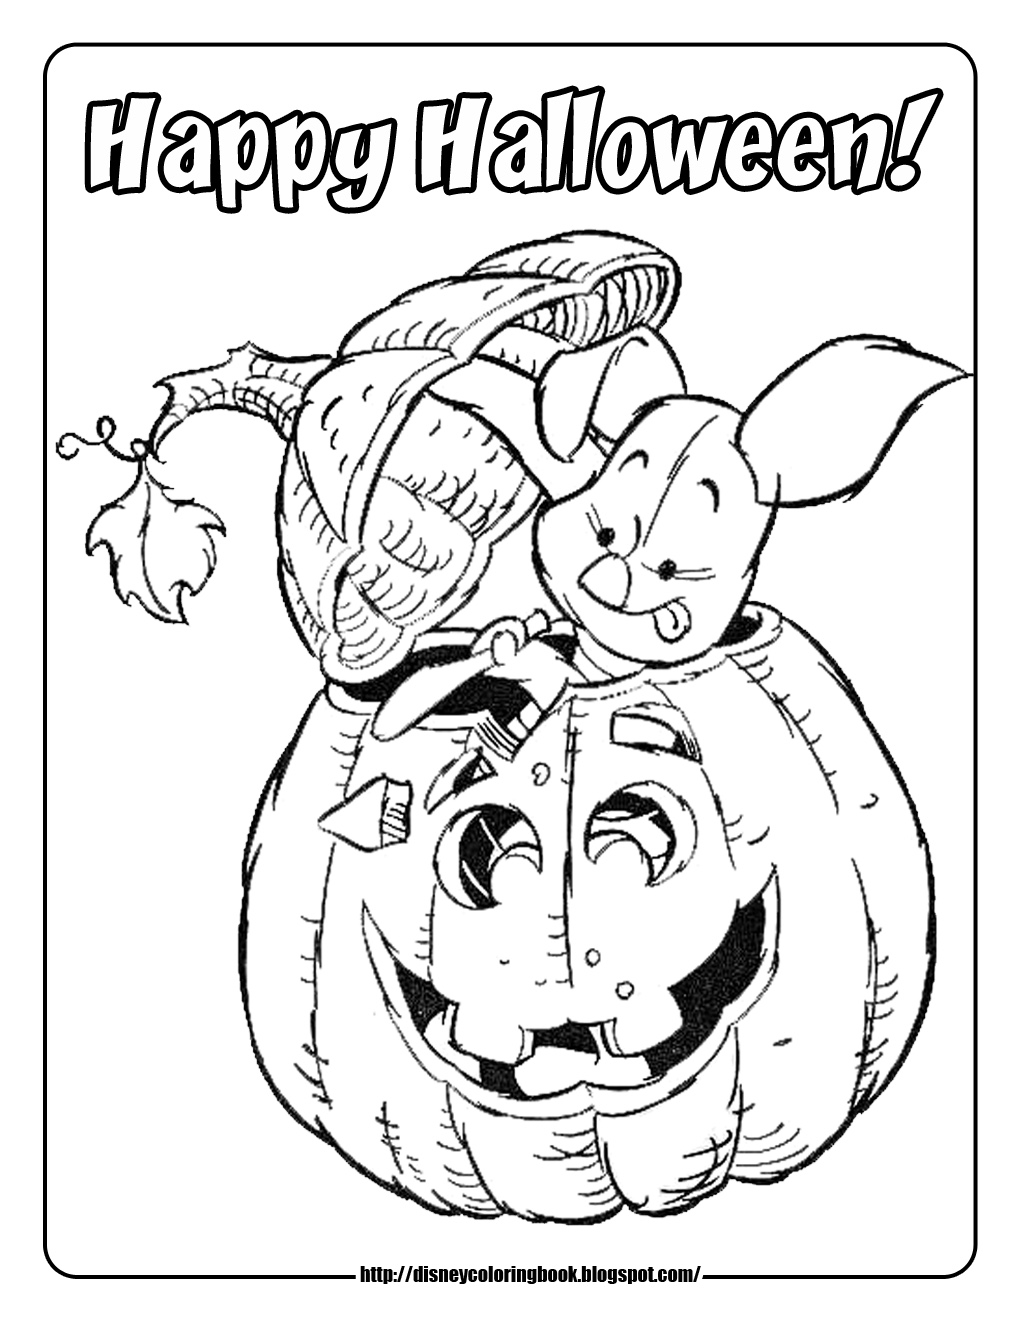 Disney Coloring Pages and Sheets for Kids: Pooh and ...